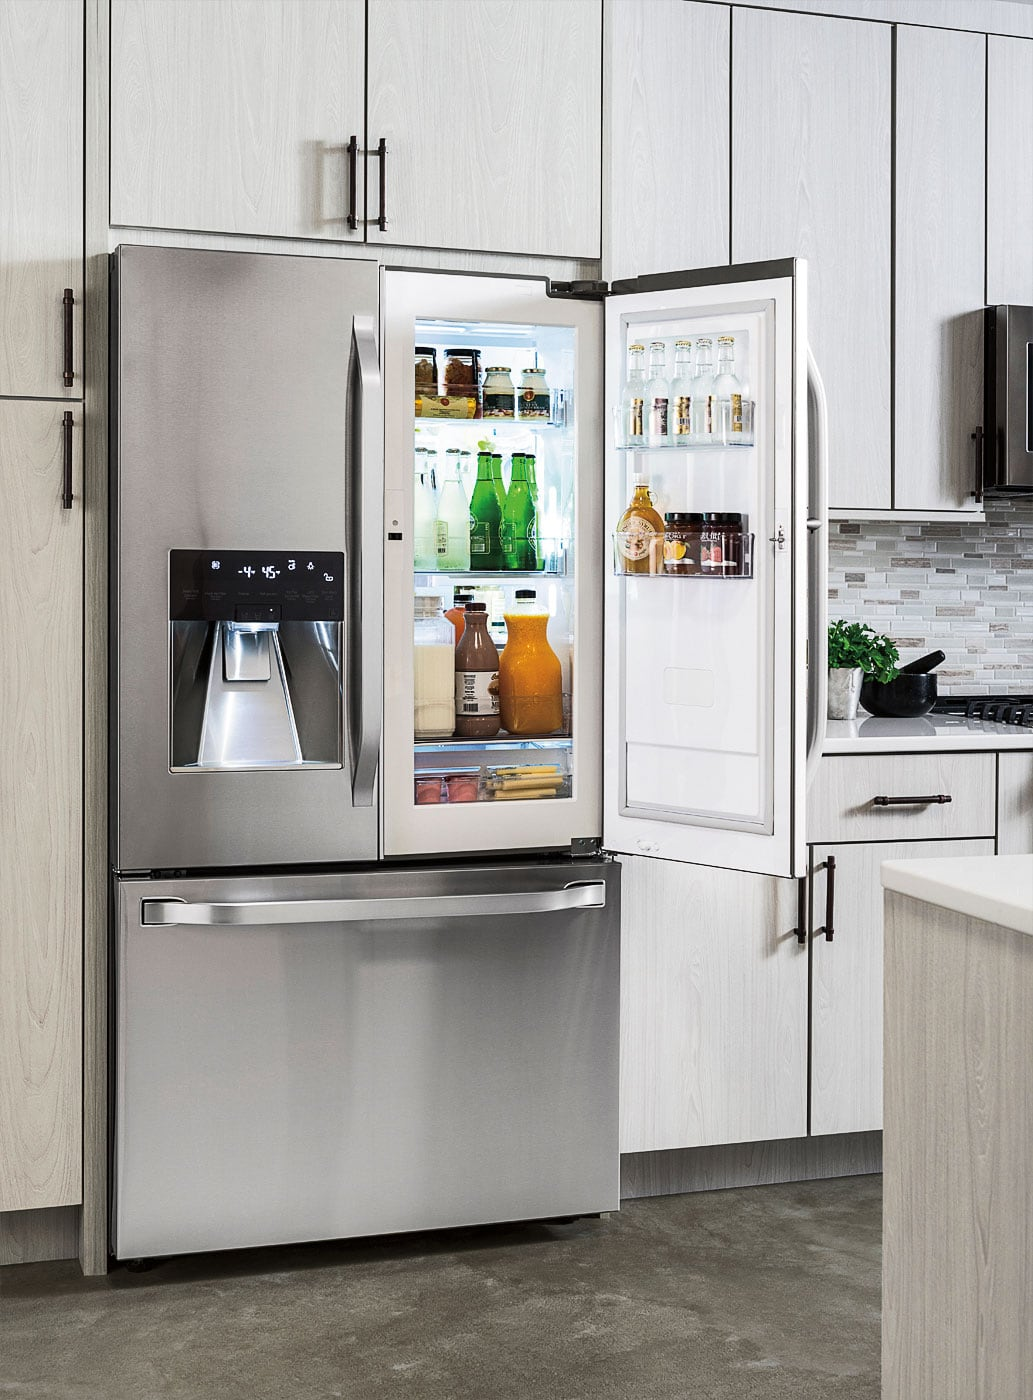 Energy Star certified refrigerators are now available at Best Buy